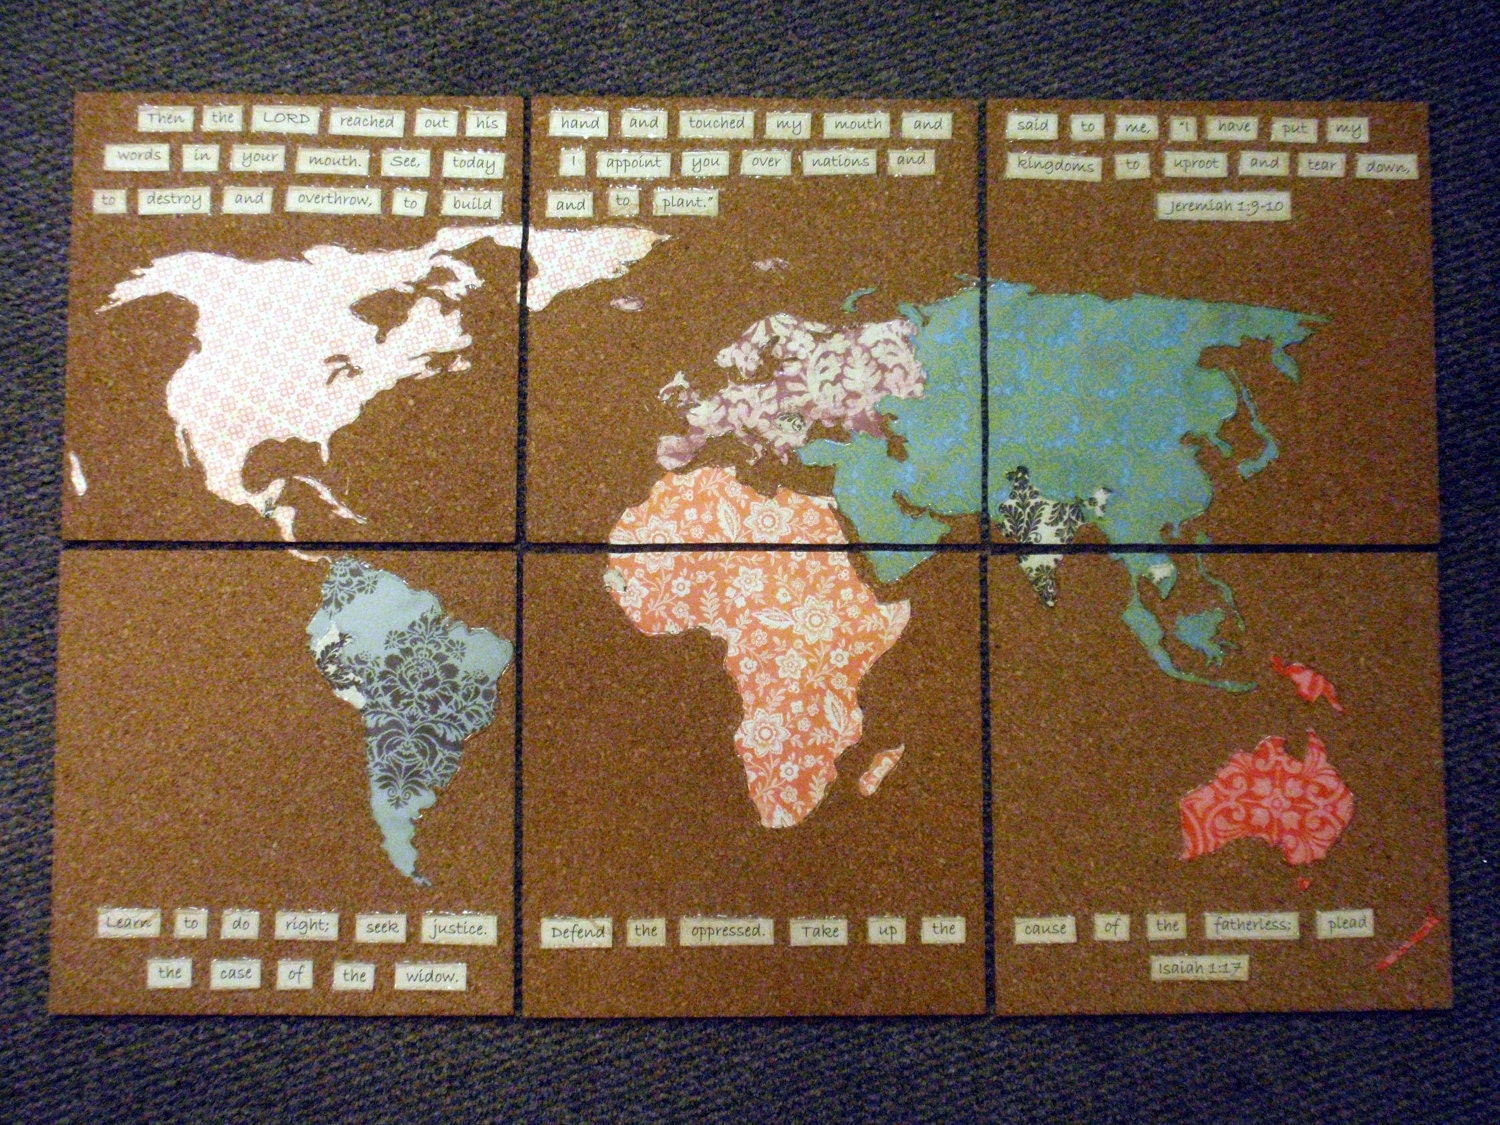 Inkspired musings travel around the world etsy treasury custom handmade cork board map gumiabroncs